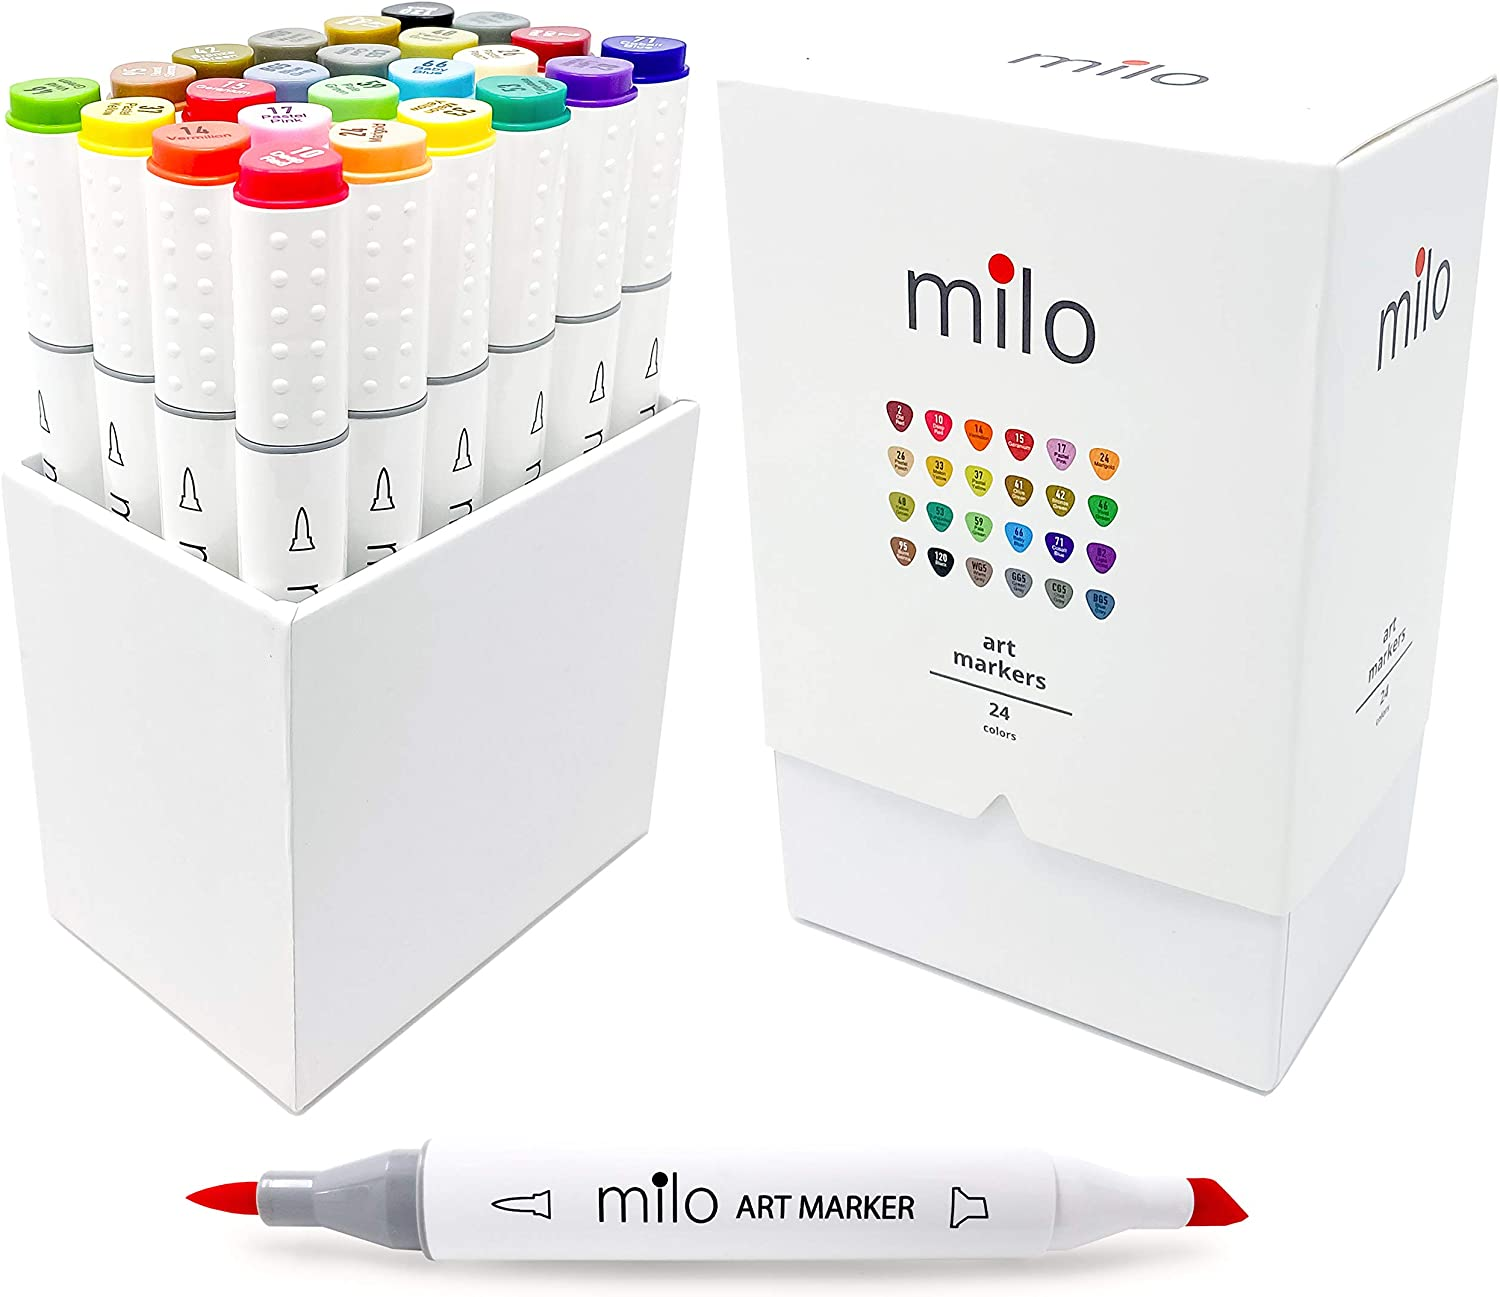 milo Alcohol Based Double Sided Art Markers | 24 pc Brush and Chisel Tip Marker Set